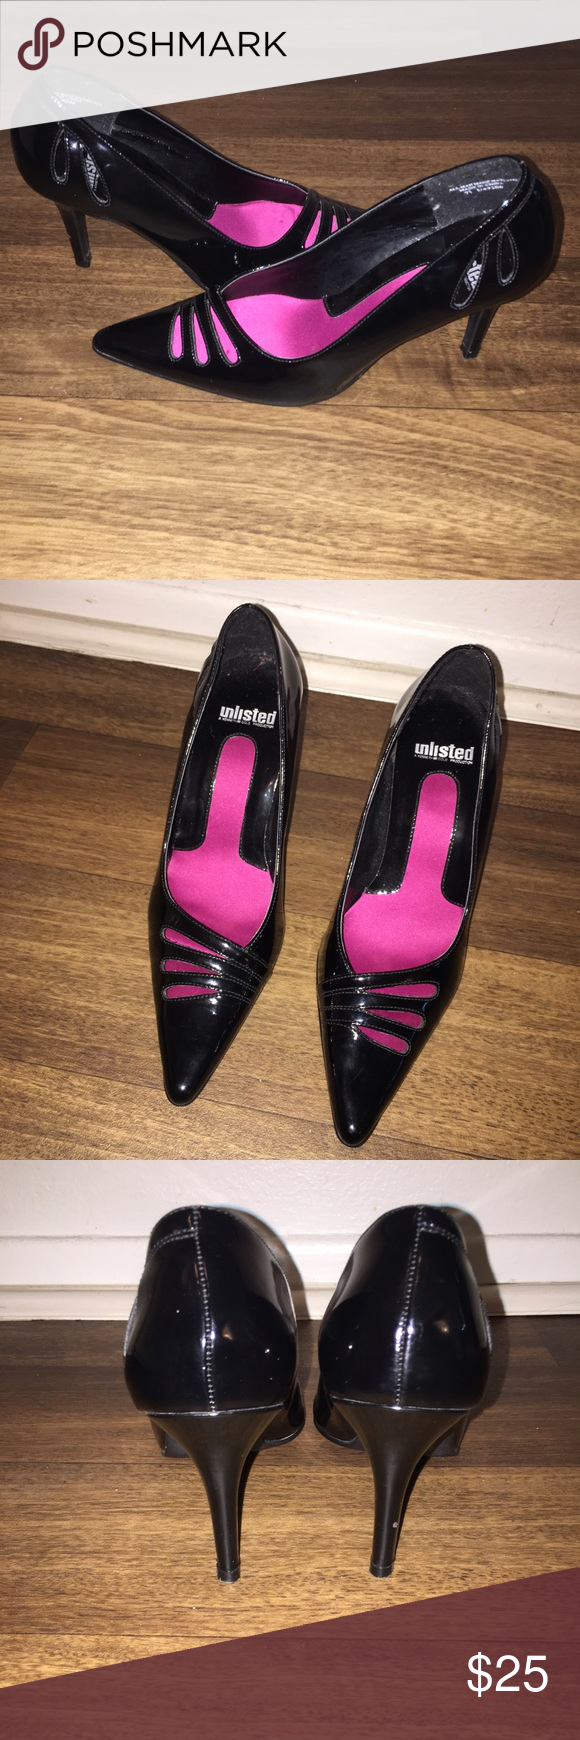 WEEKEND SALE! 🔥KENNETH COLE UNLISTED STILETTOS SIZE 7 1/2. FIRM PRICE! ABSOLUTE BEAUTIES! LOVE KENNETH'S SHOES.  THESE ARE MOMS IM SELLING THEM FOR HER :) THEY ARE IN GREAT CONDTION AS U CAN SEE IN PICS ONLY FLAW IS A SMALL LITTLE DOT ON OF THE HEEL SEE PIC. WORN A COUPLE TIMES GENTLY SIZE 7 1/2.  HEEL IS A TAD OVER 3 1/2 INCHES Kenneth cole unlisted  Shoes Heels